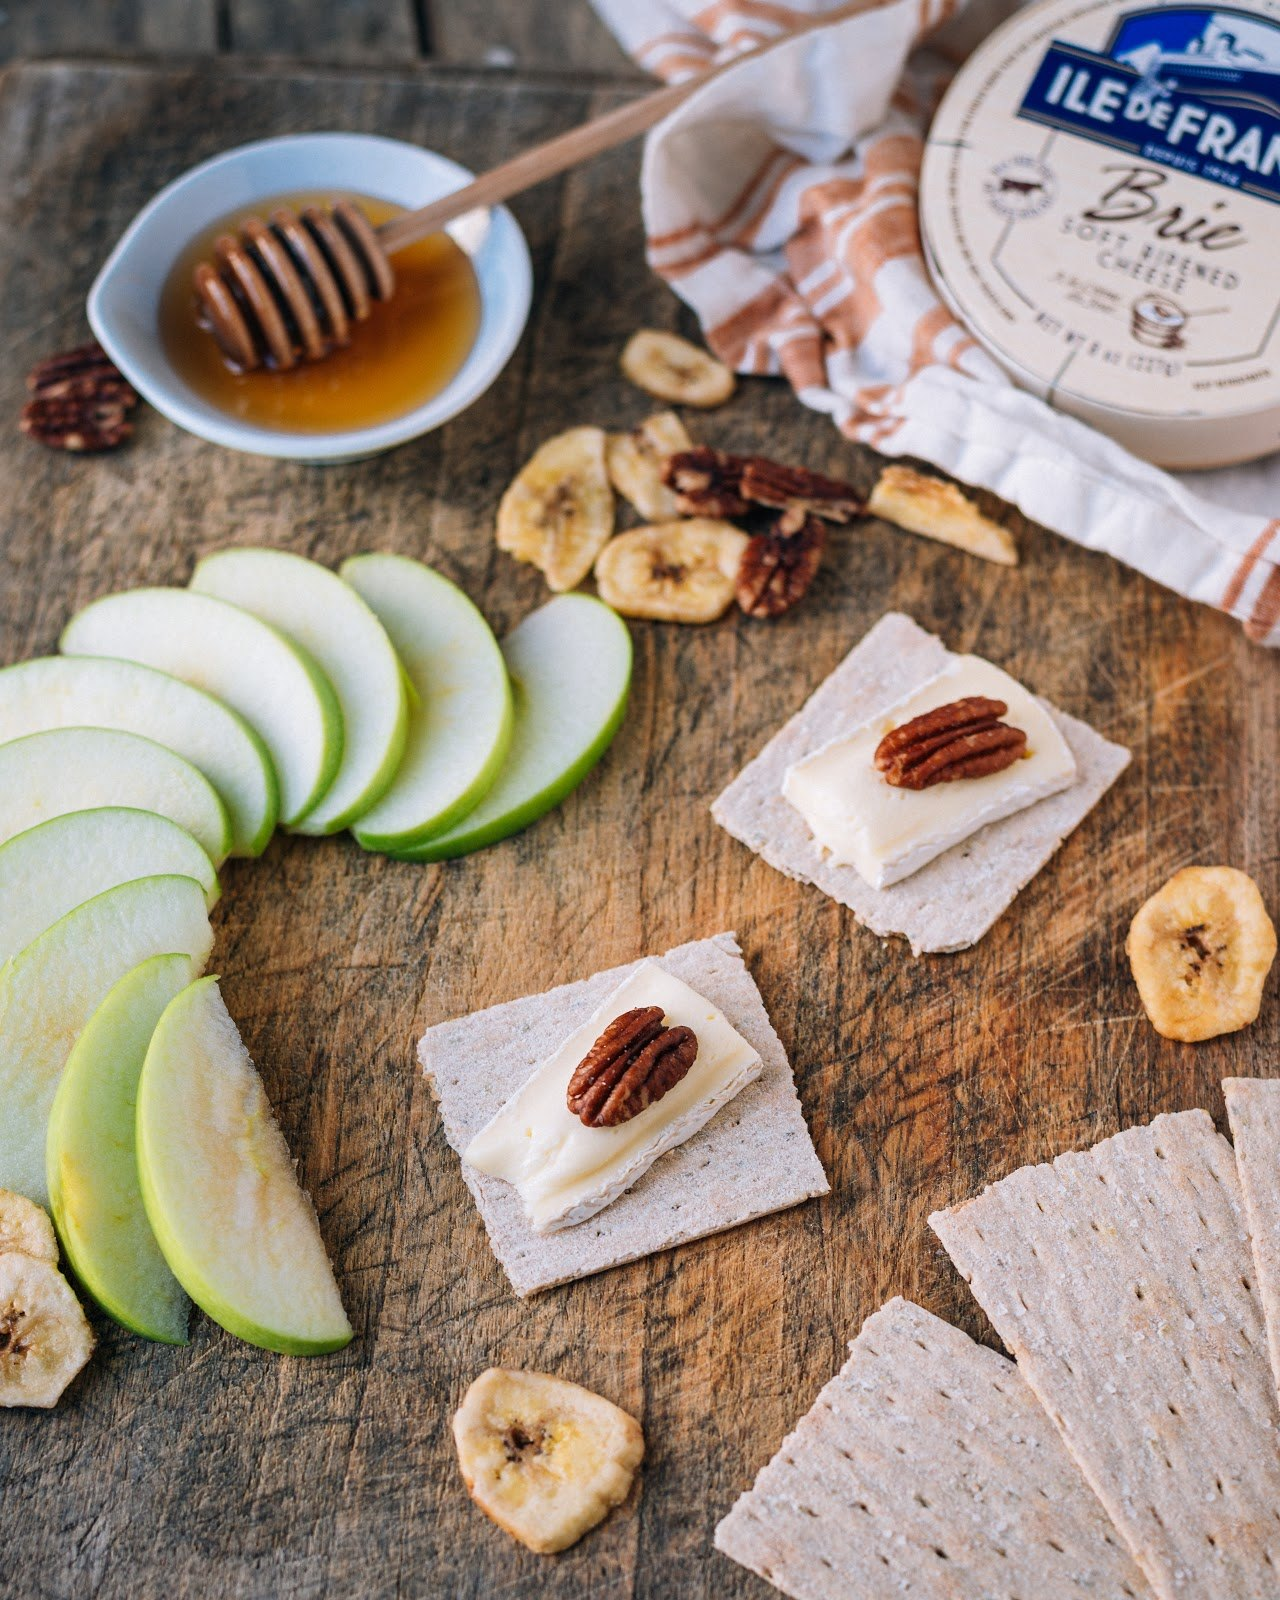 Ile de France Brie, honey and apple with crackers